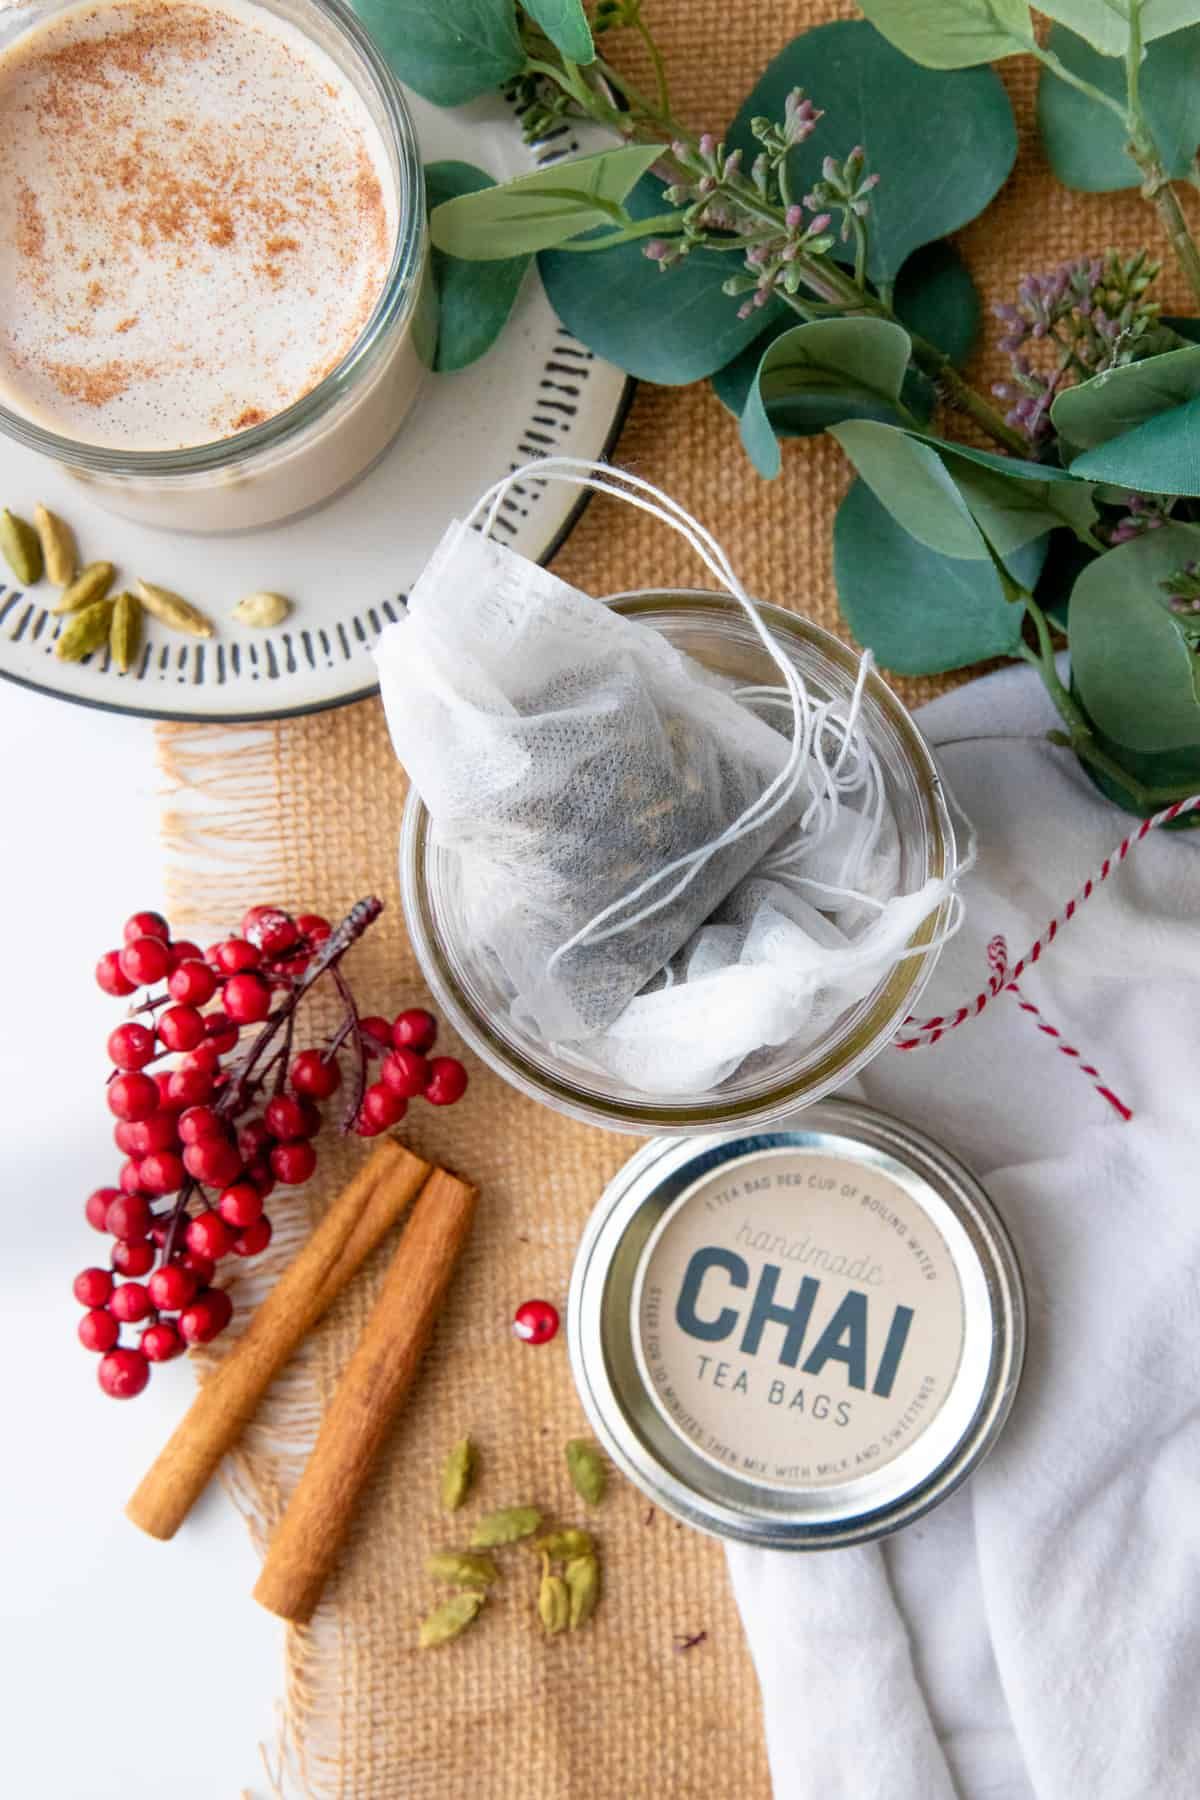 Tea bags filled with chai mix are in a glass mason jar surrounded by spices.